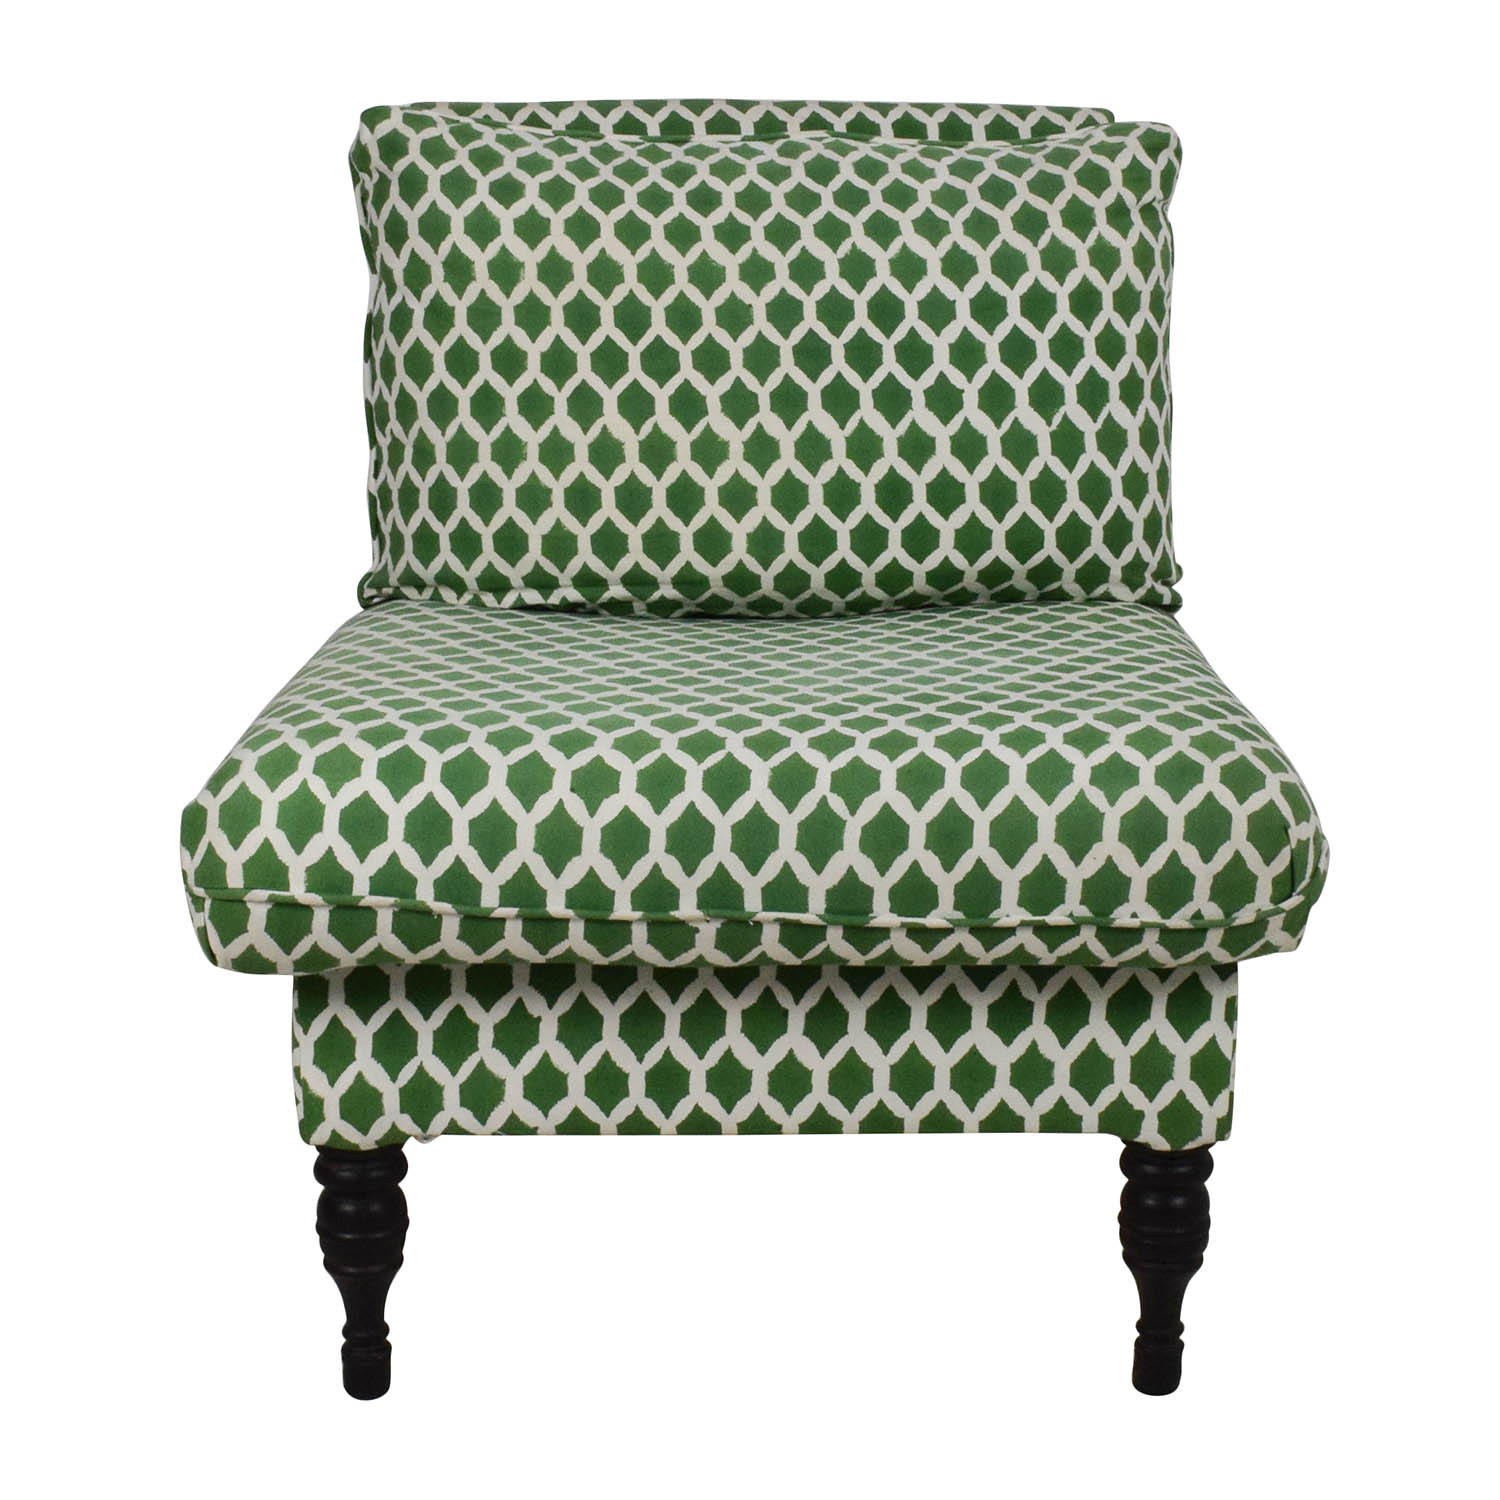 Roberta Roller Rabbit Oversized Chair / Sofas